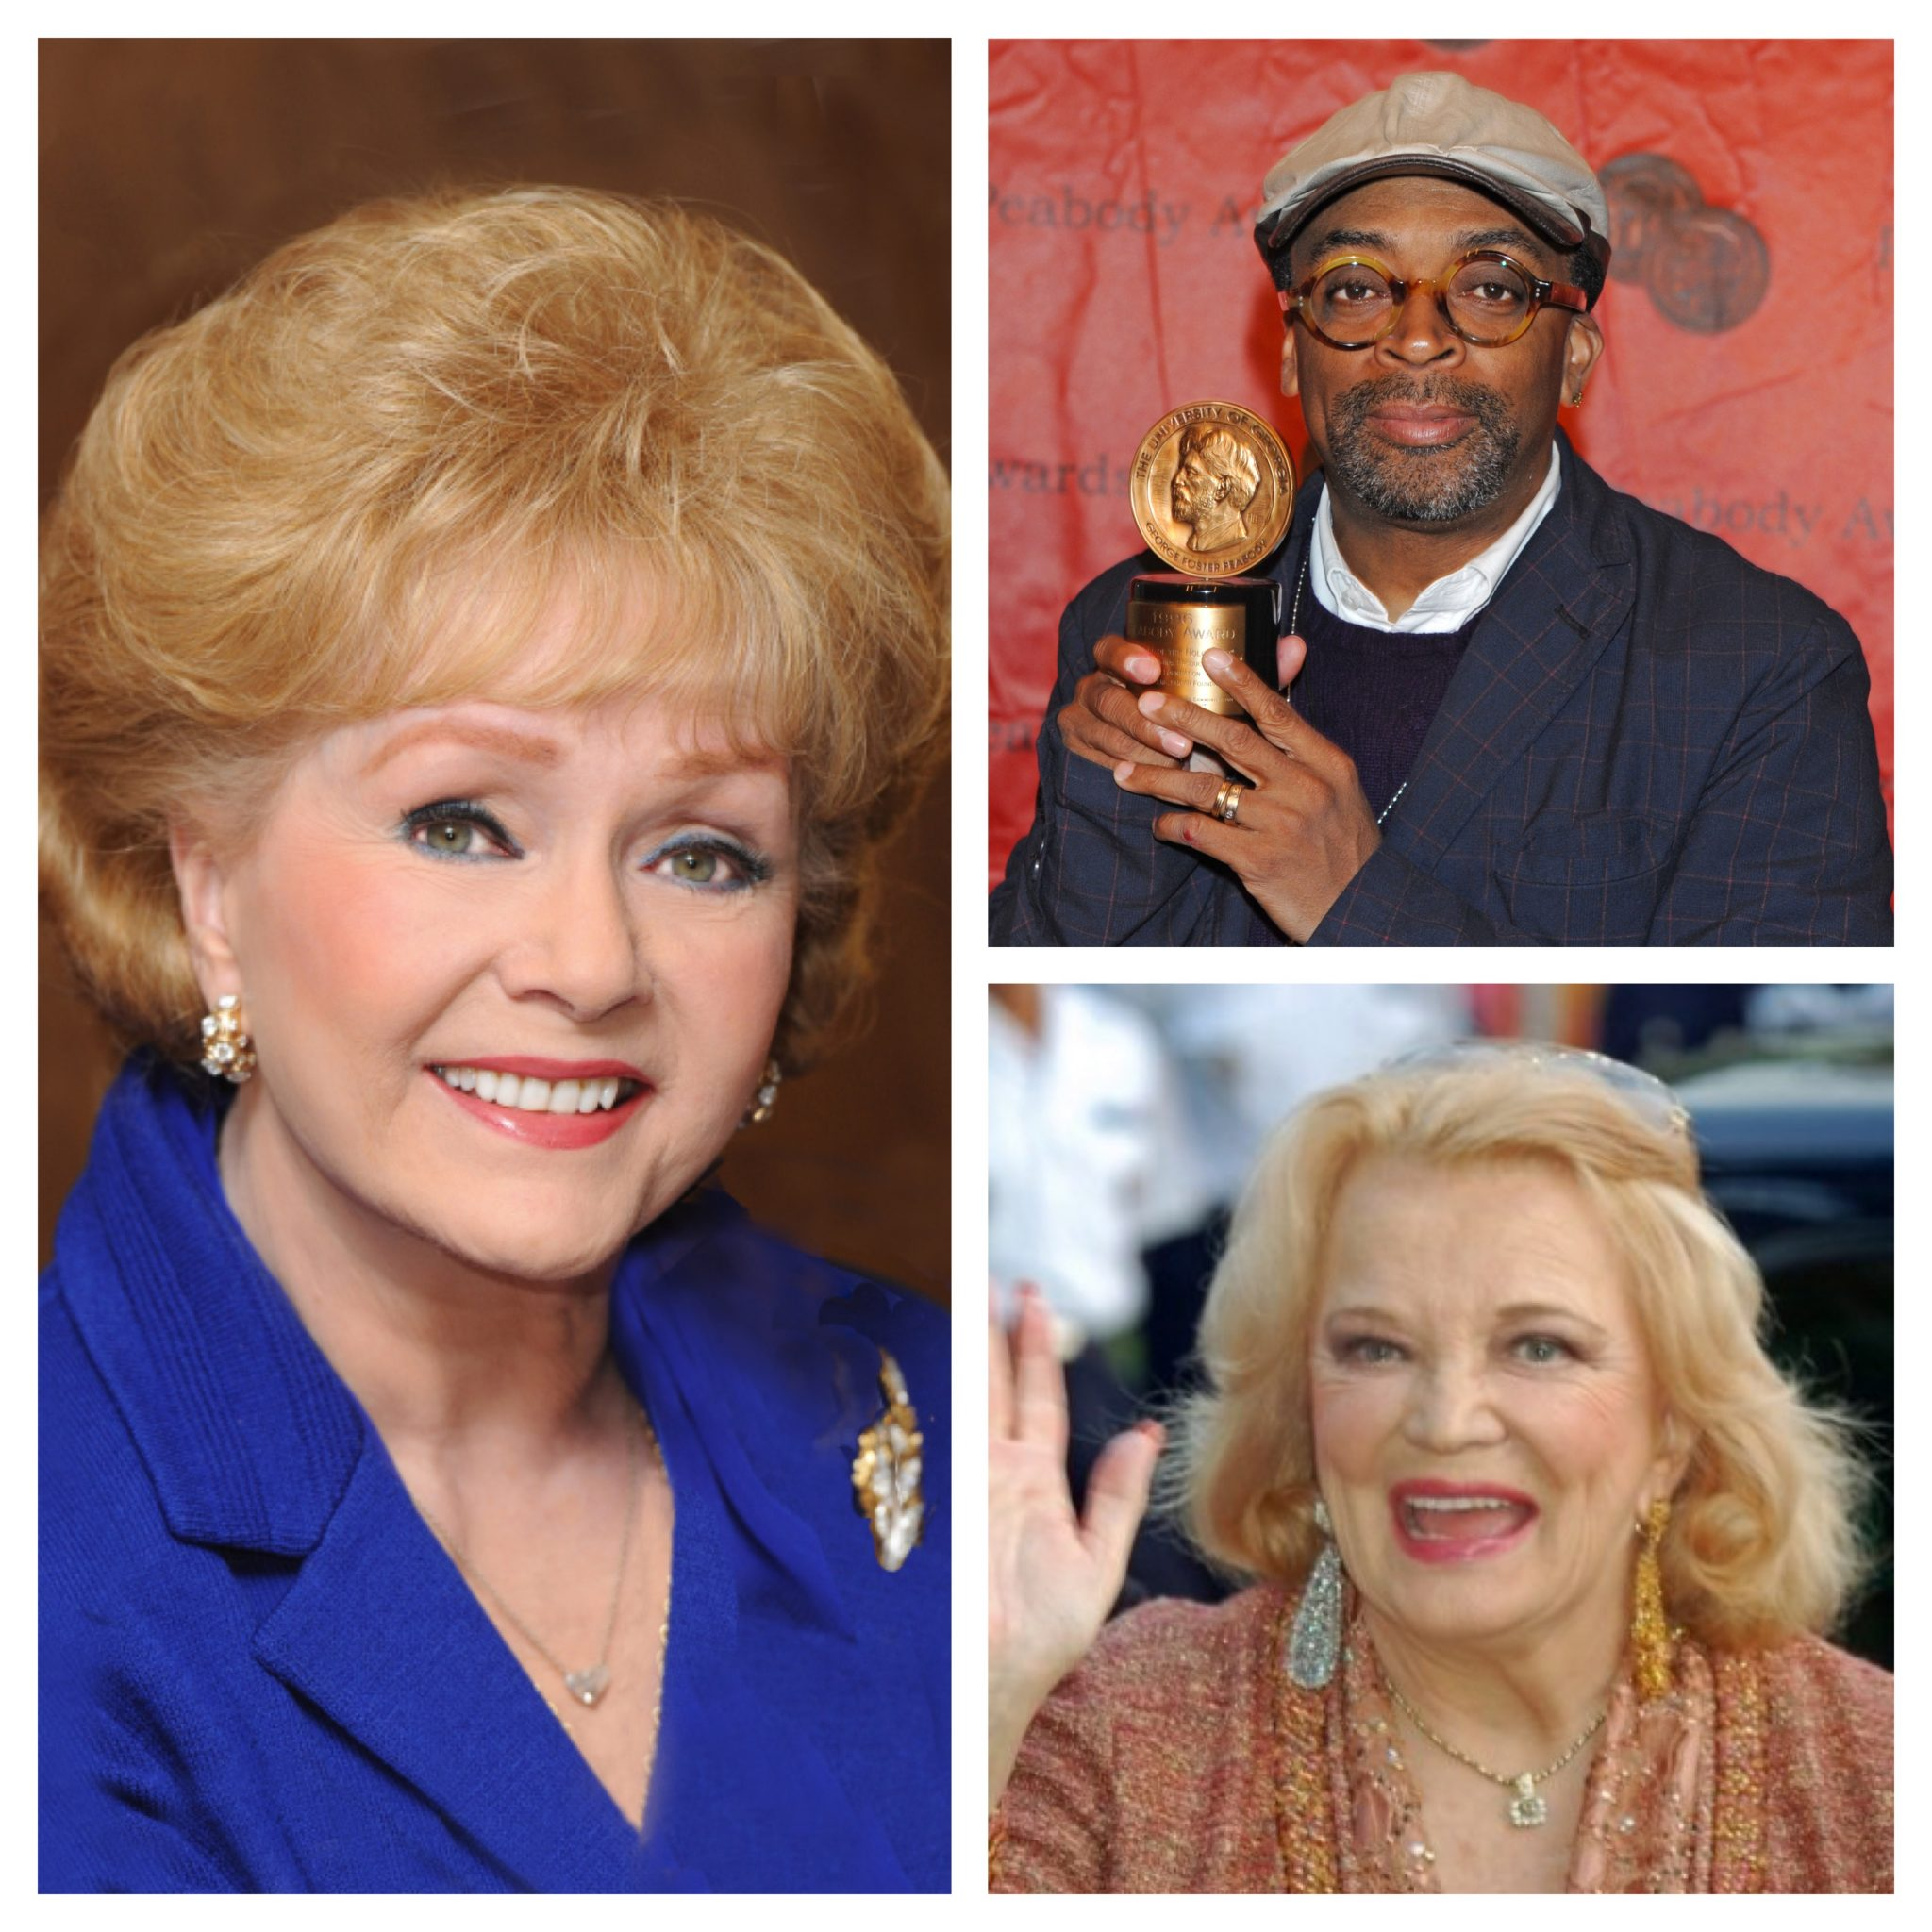 Spike Lee, Gena Rowlands, Debbie Reynolds to Be Honored at Academy's 7th Governors Awards